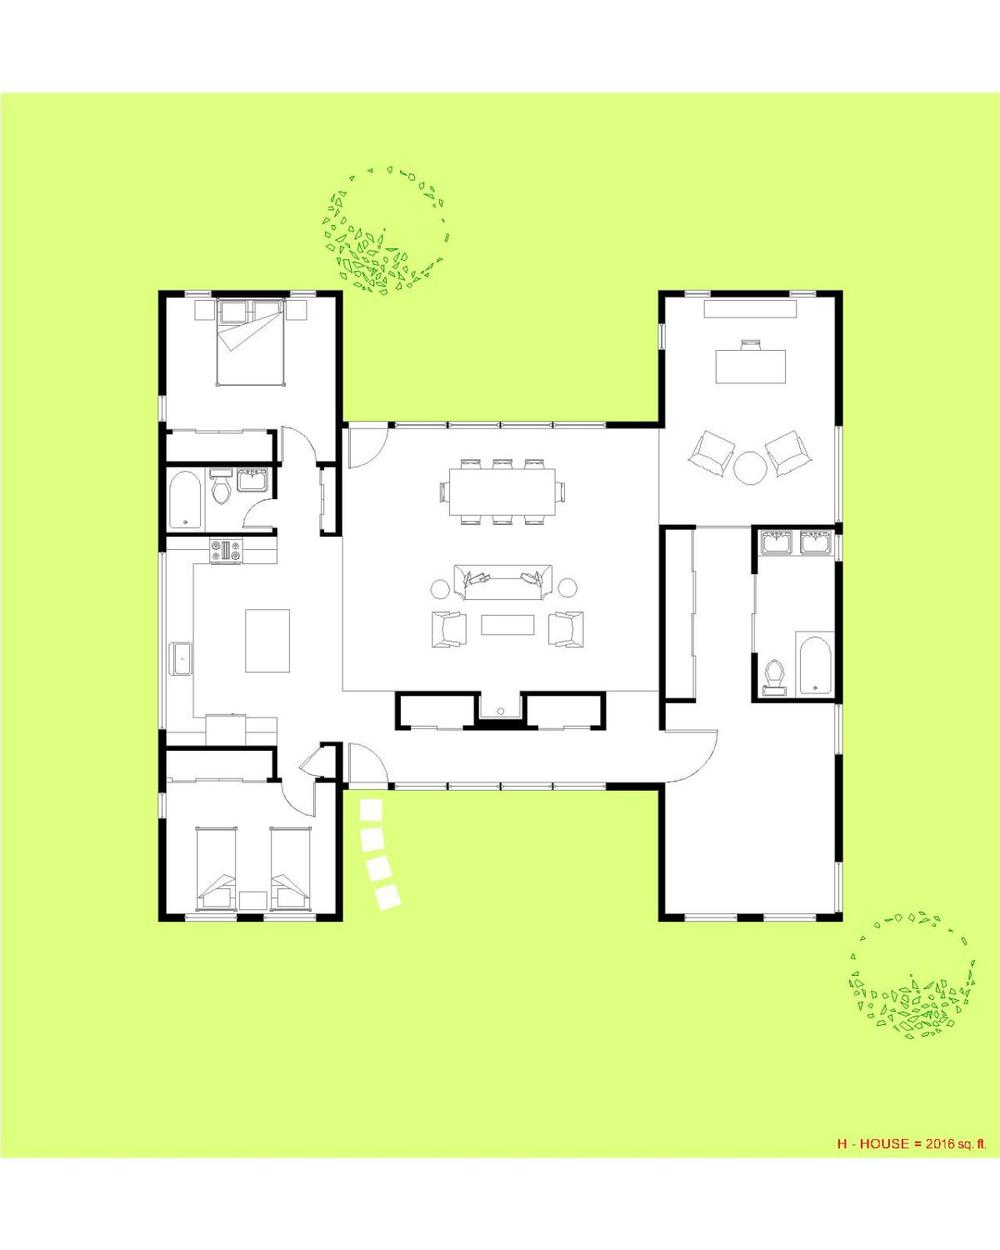 Modern efficient house plans zionstarnet Find the best images